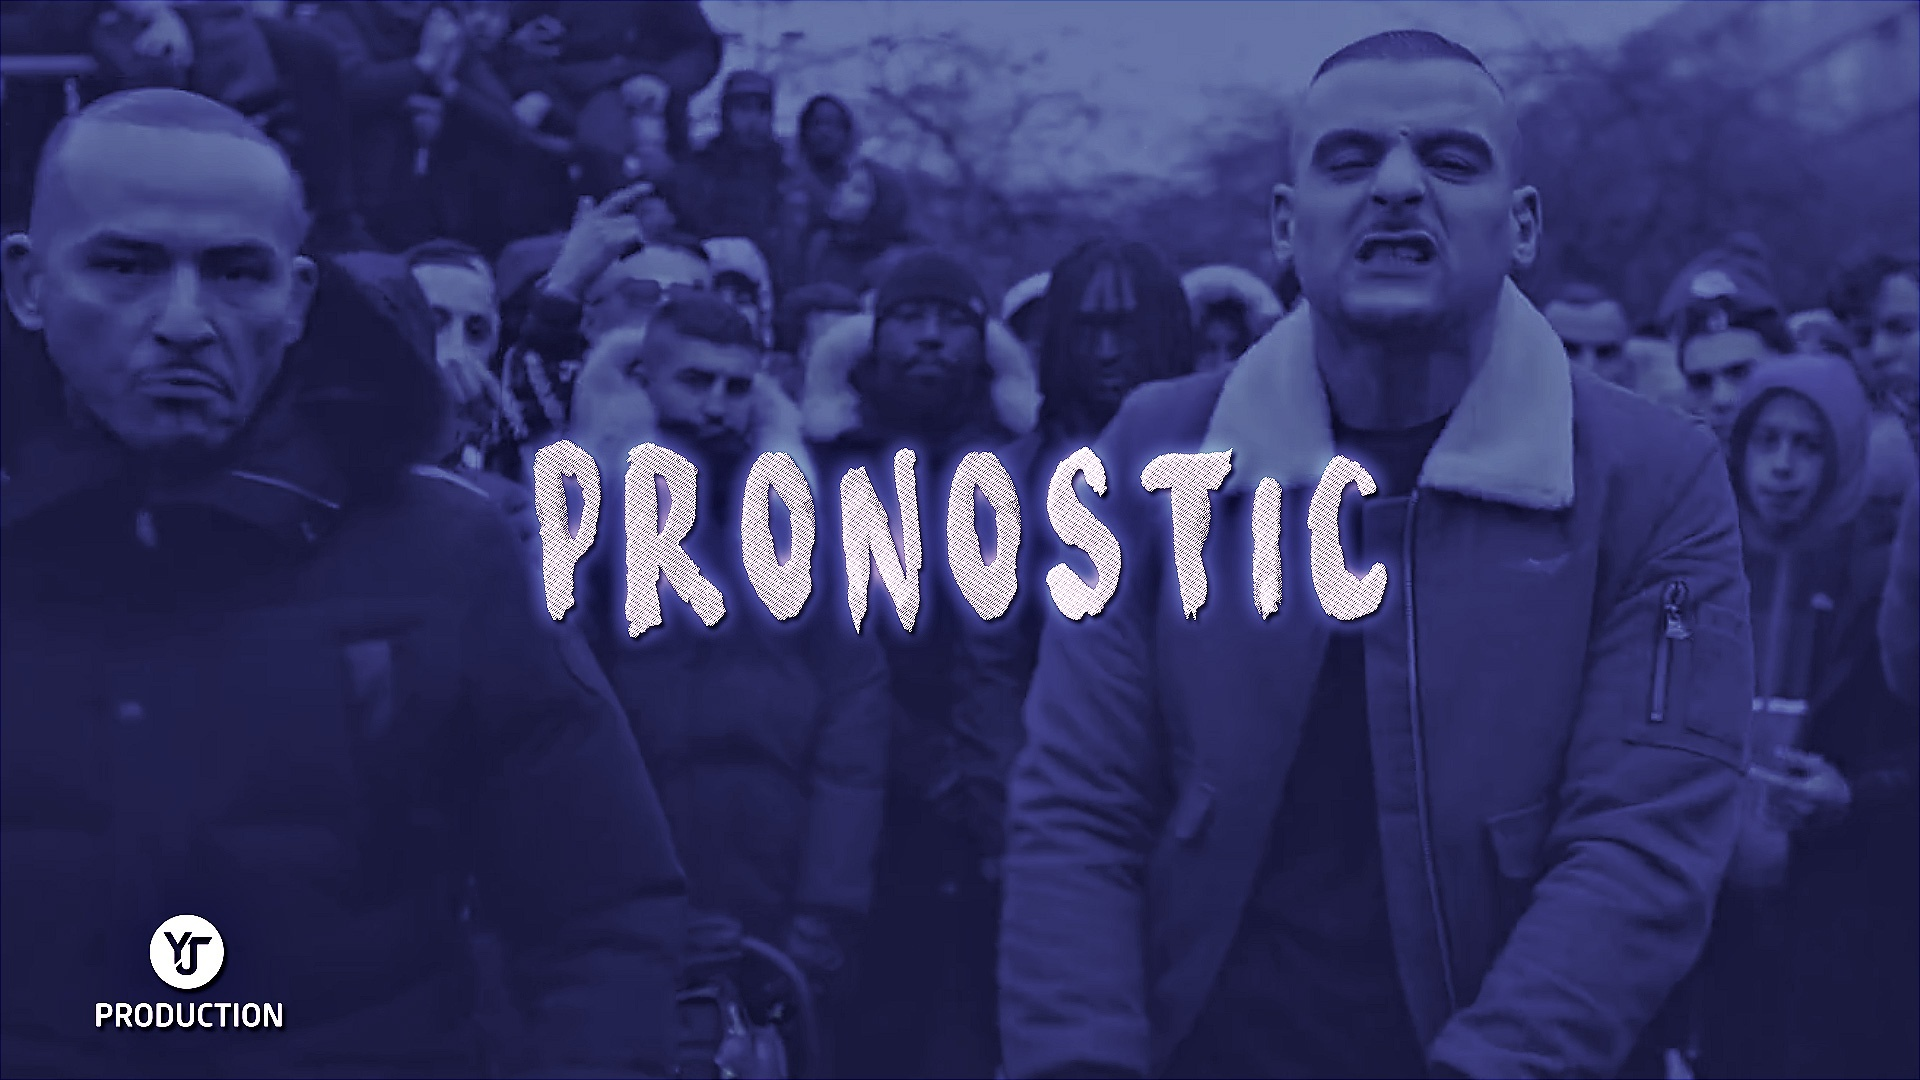 [FREE] PRONOSTIC | YJ Production